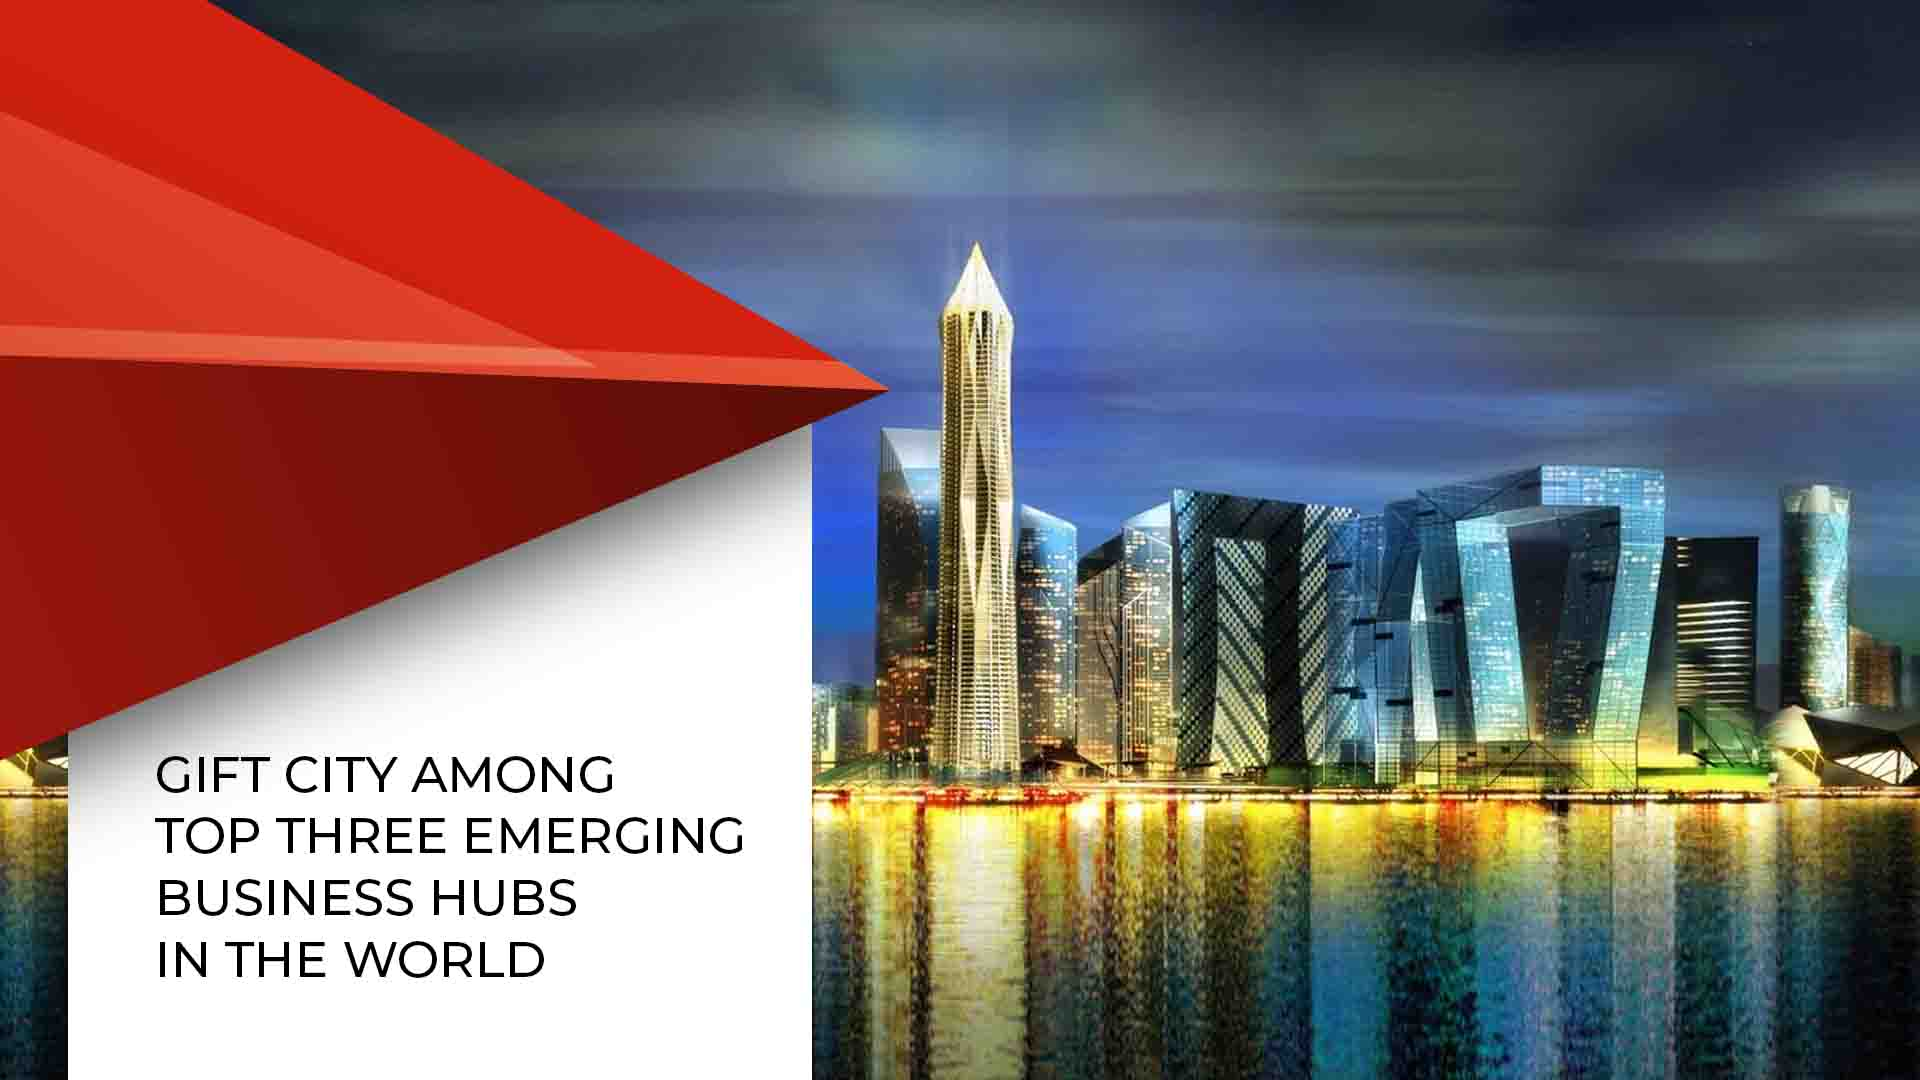 GIFT City Among Top Three Emerging Business Hubs in the World